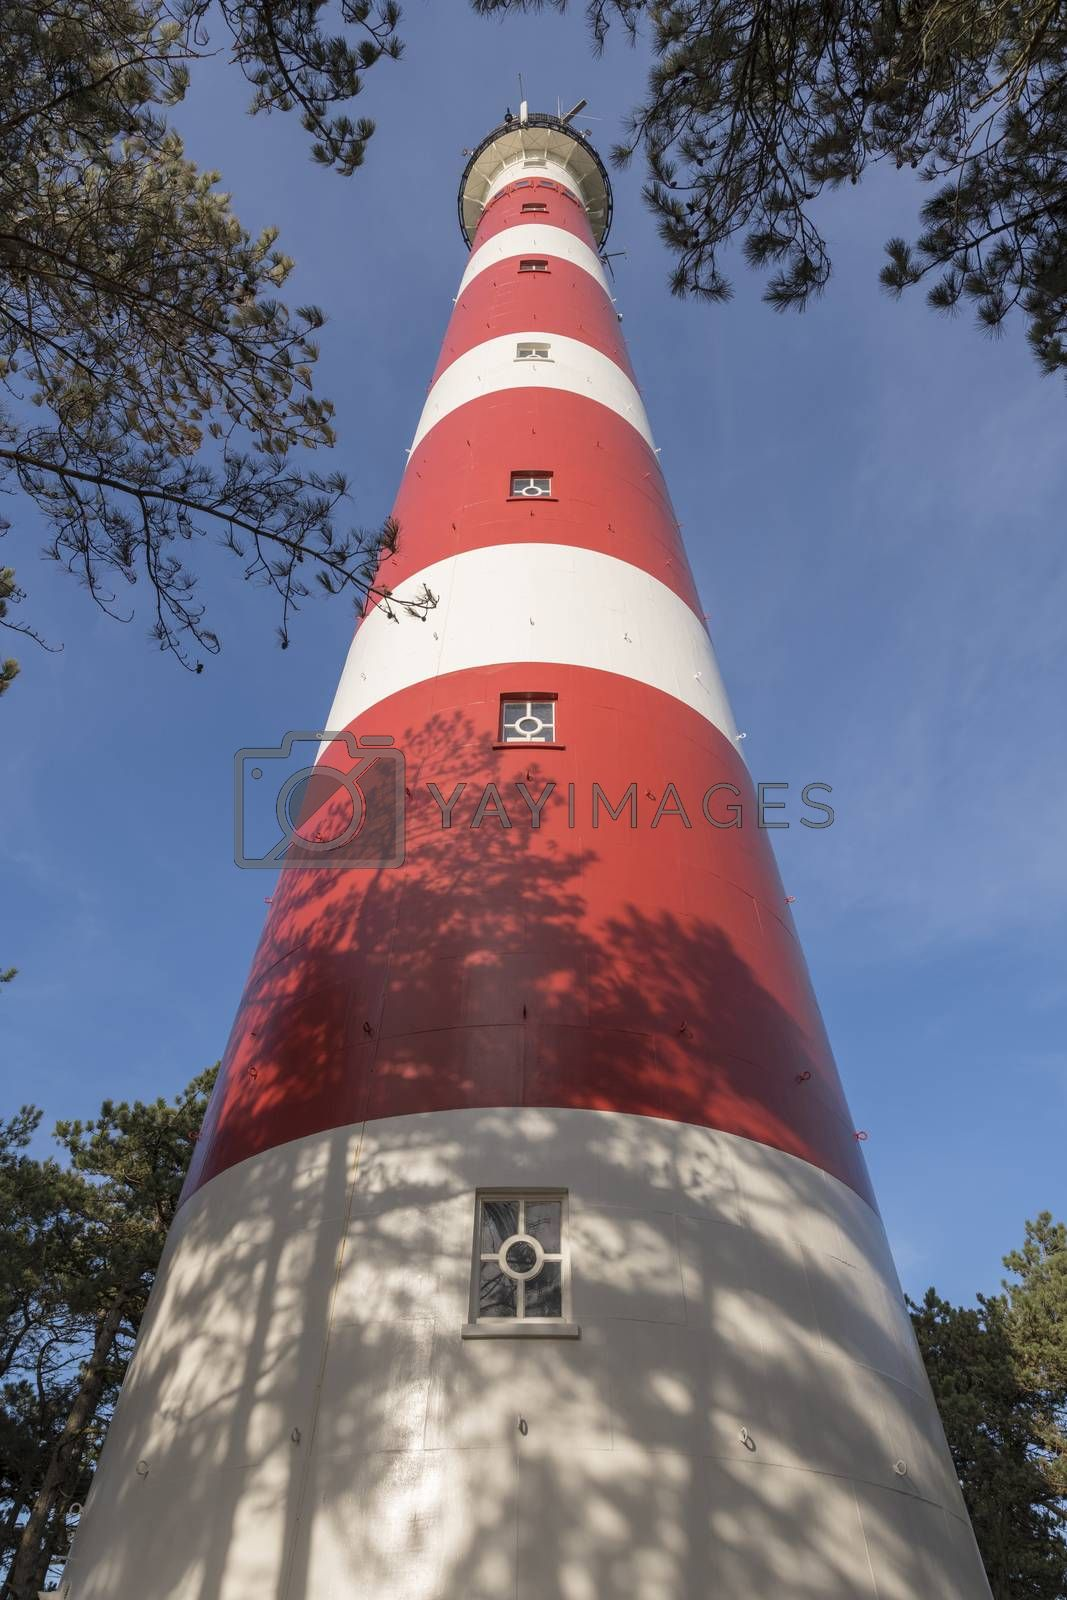 Lighthouse of the island Ameland in northern Netherlands as wide-angle shot